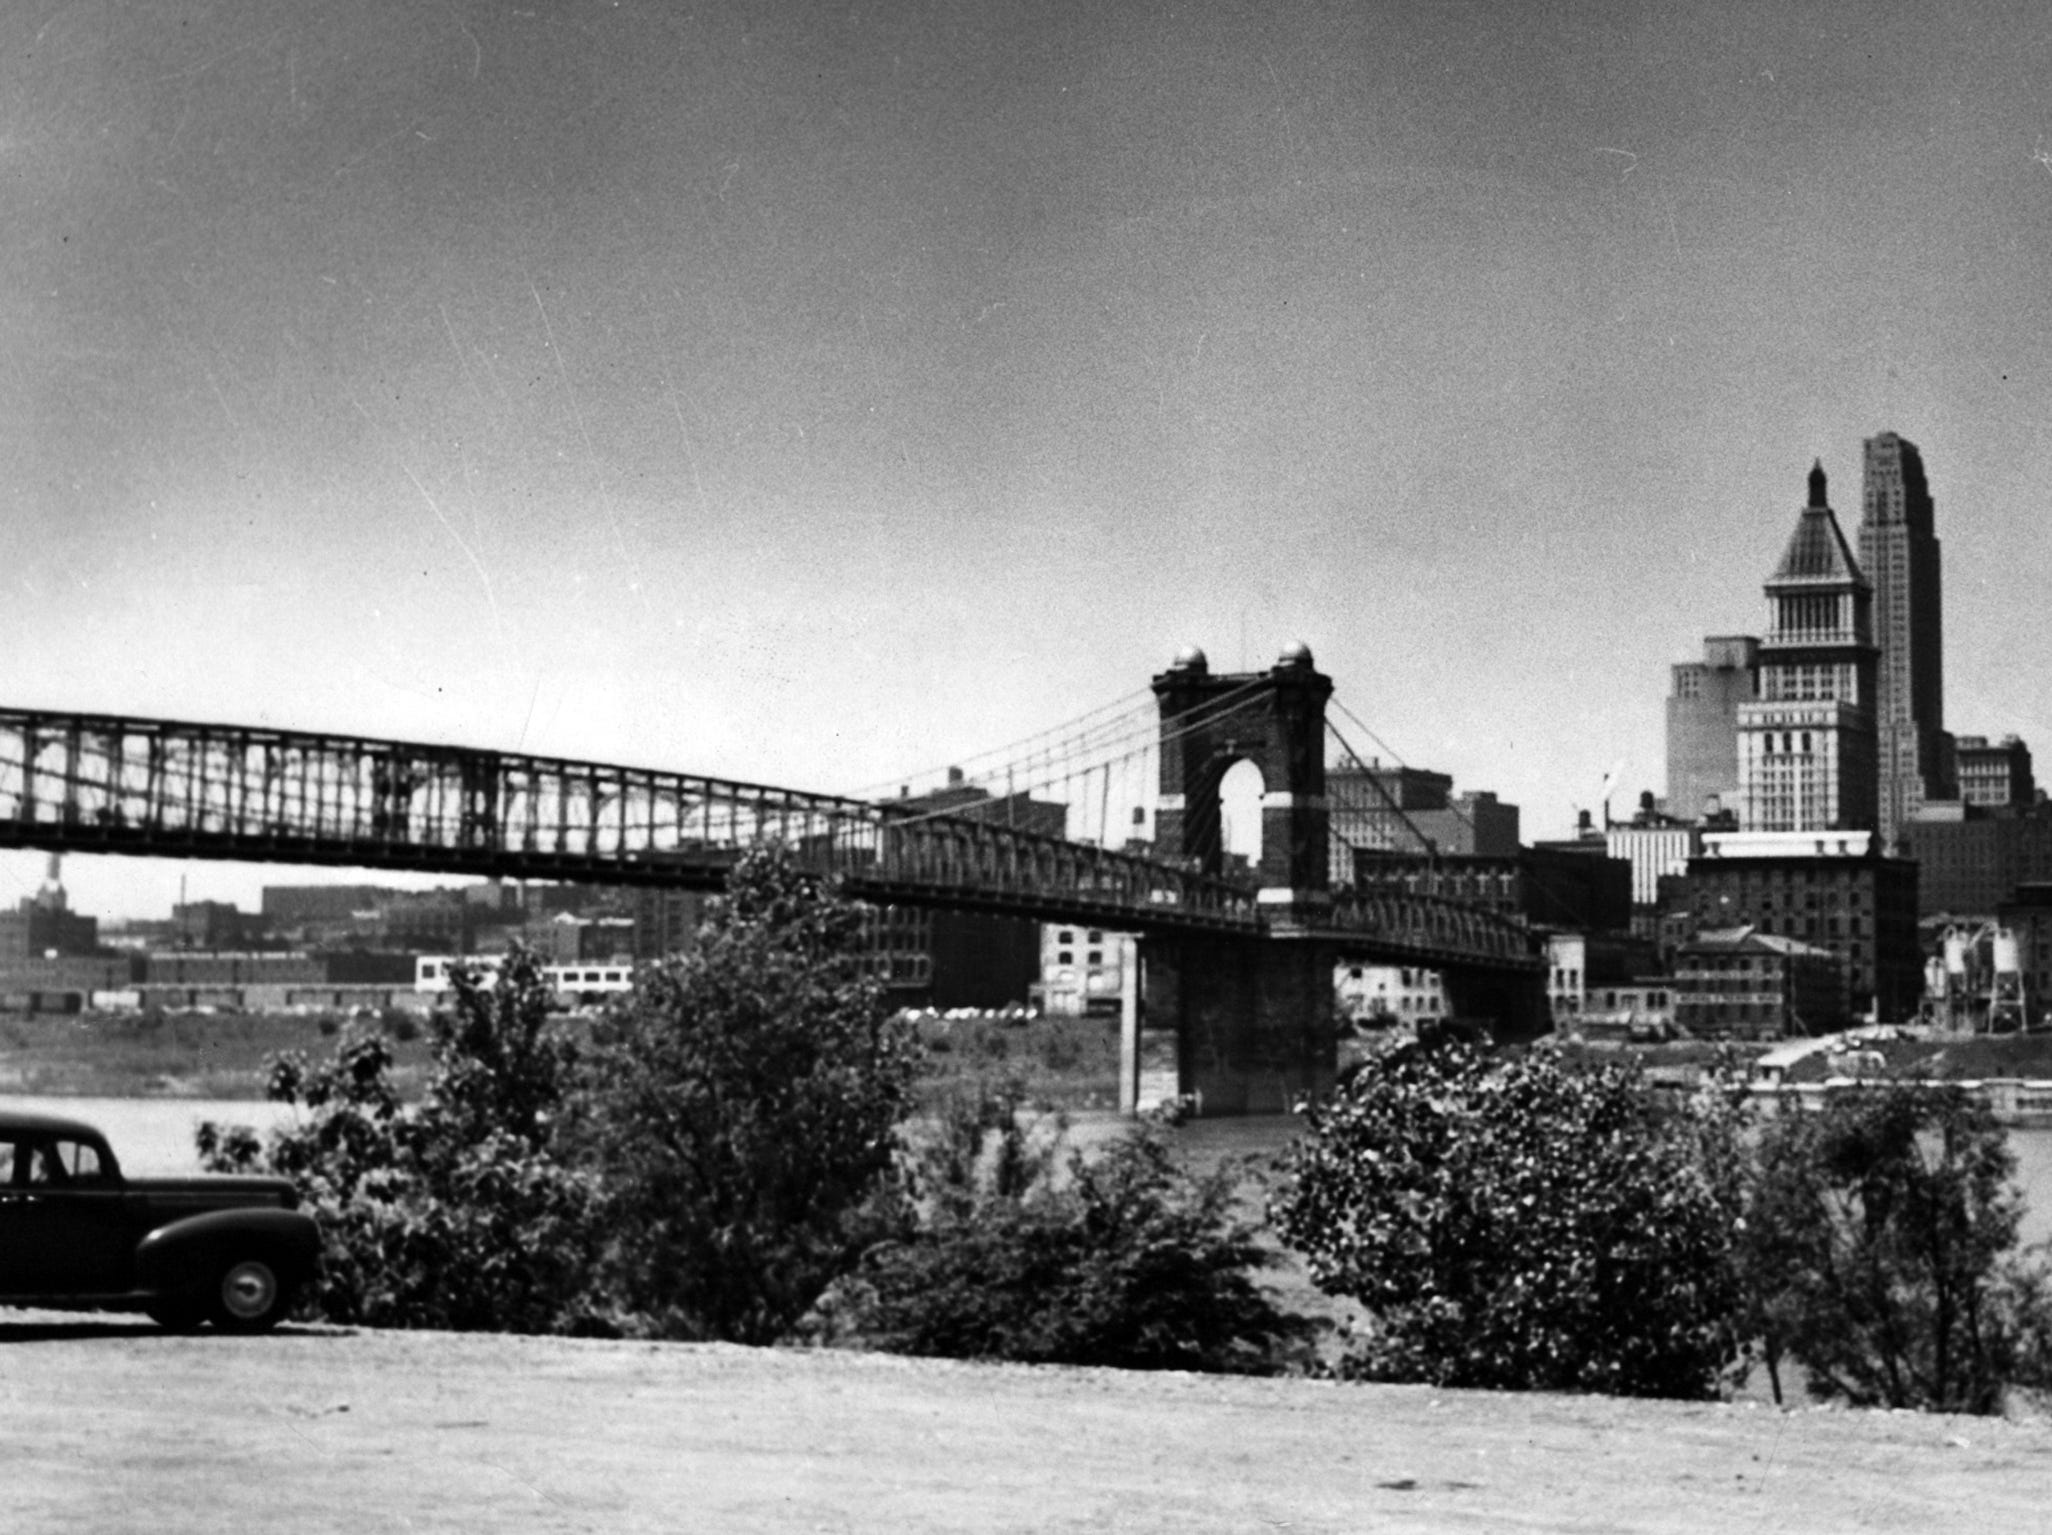 1952: John A. Roebling Suspension Bridge as seen from the Kentucky side of the Ohio River. Enquirer File Photo scanned May 16, 2013